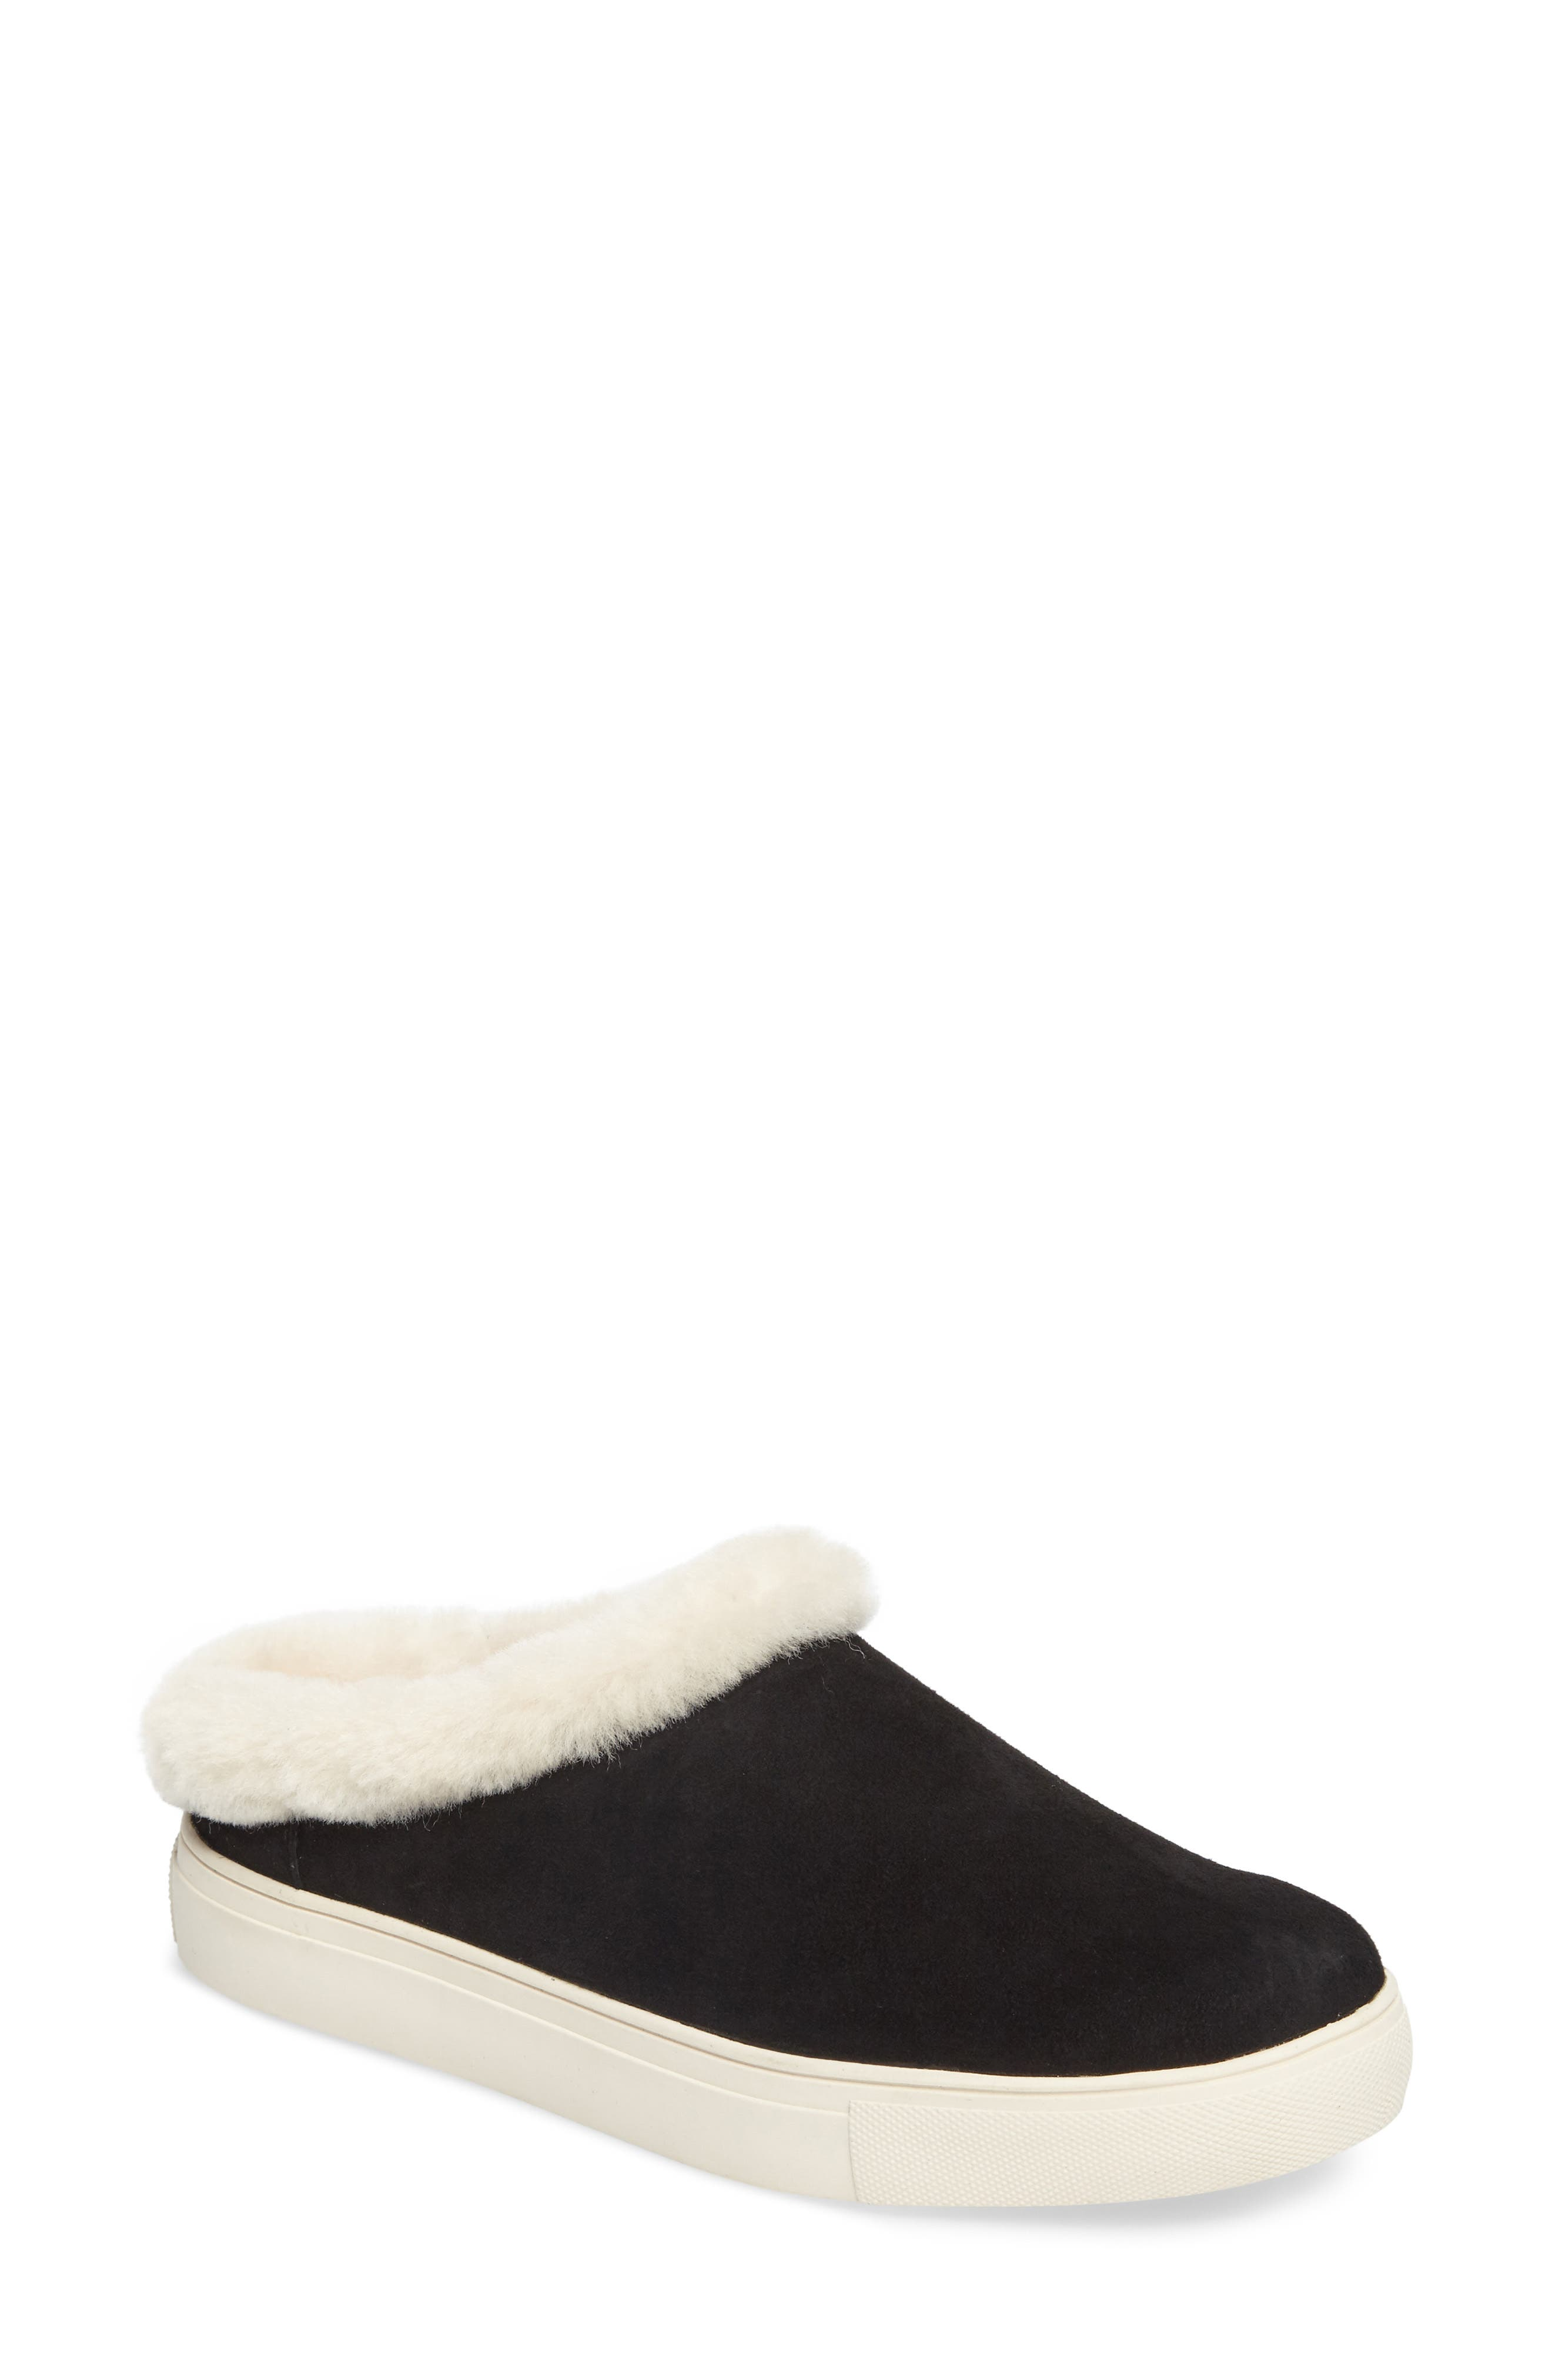 Leia Genuine Shearling Lined Slip-On,                         Main,                         color, 001